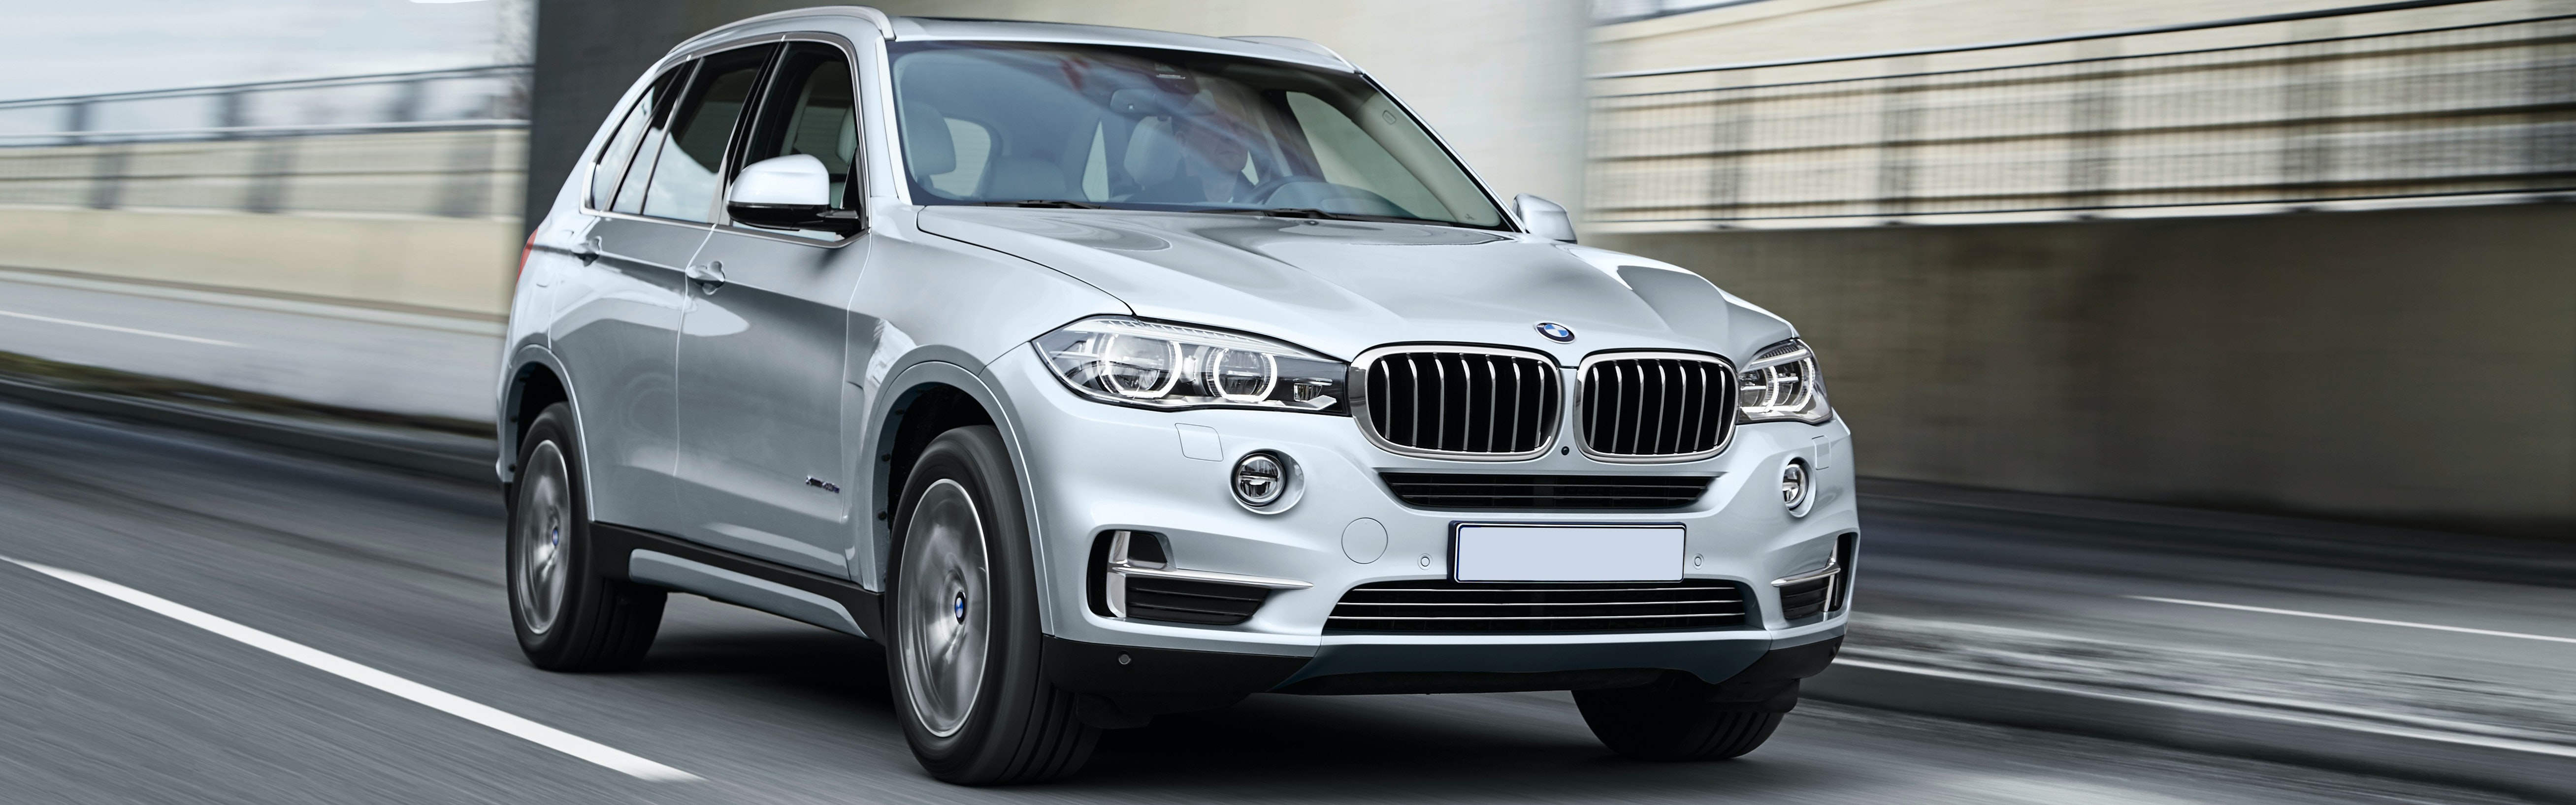 Silver BMW X5 Hybrid Driving, Viewed From The Front